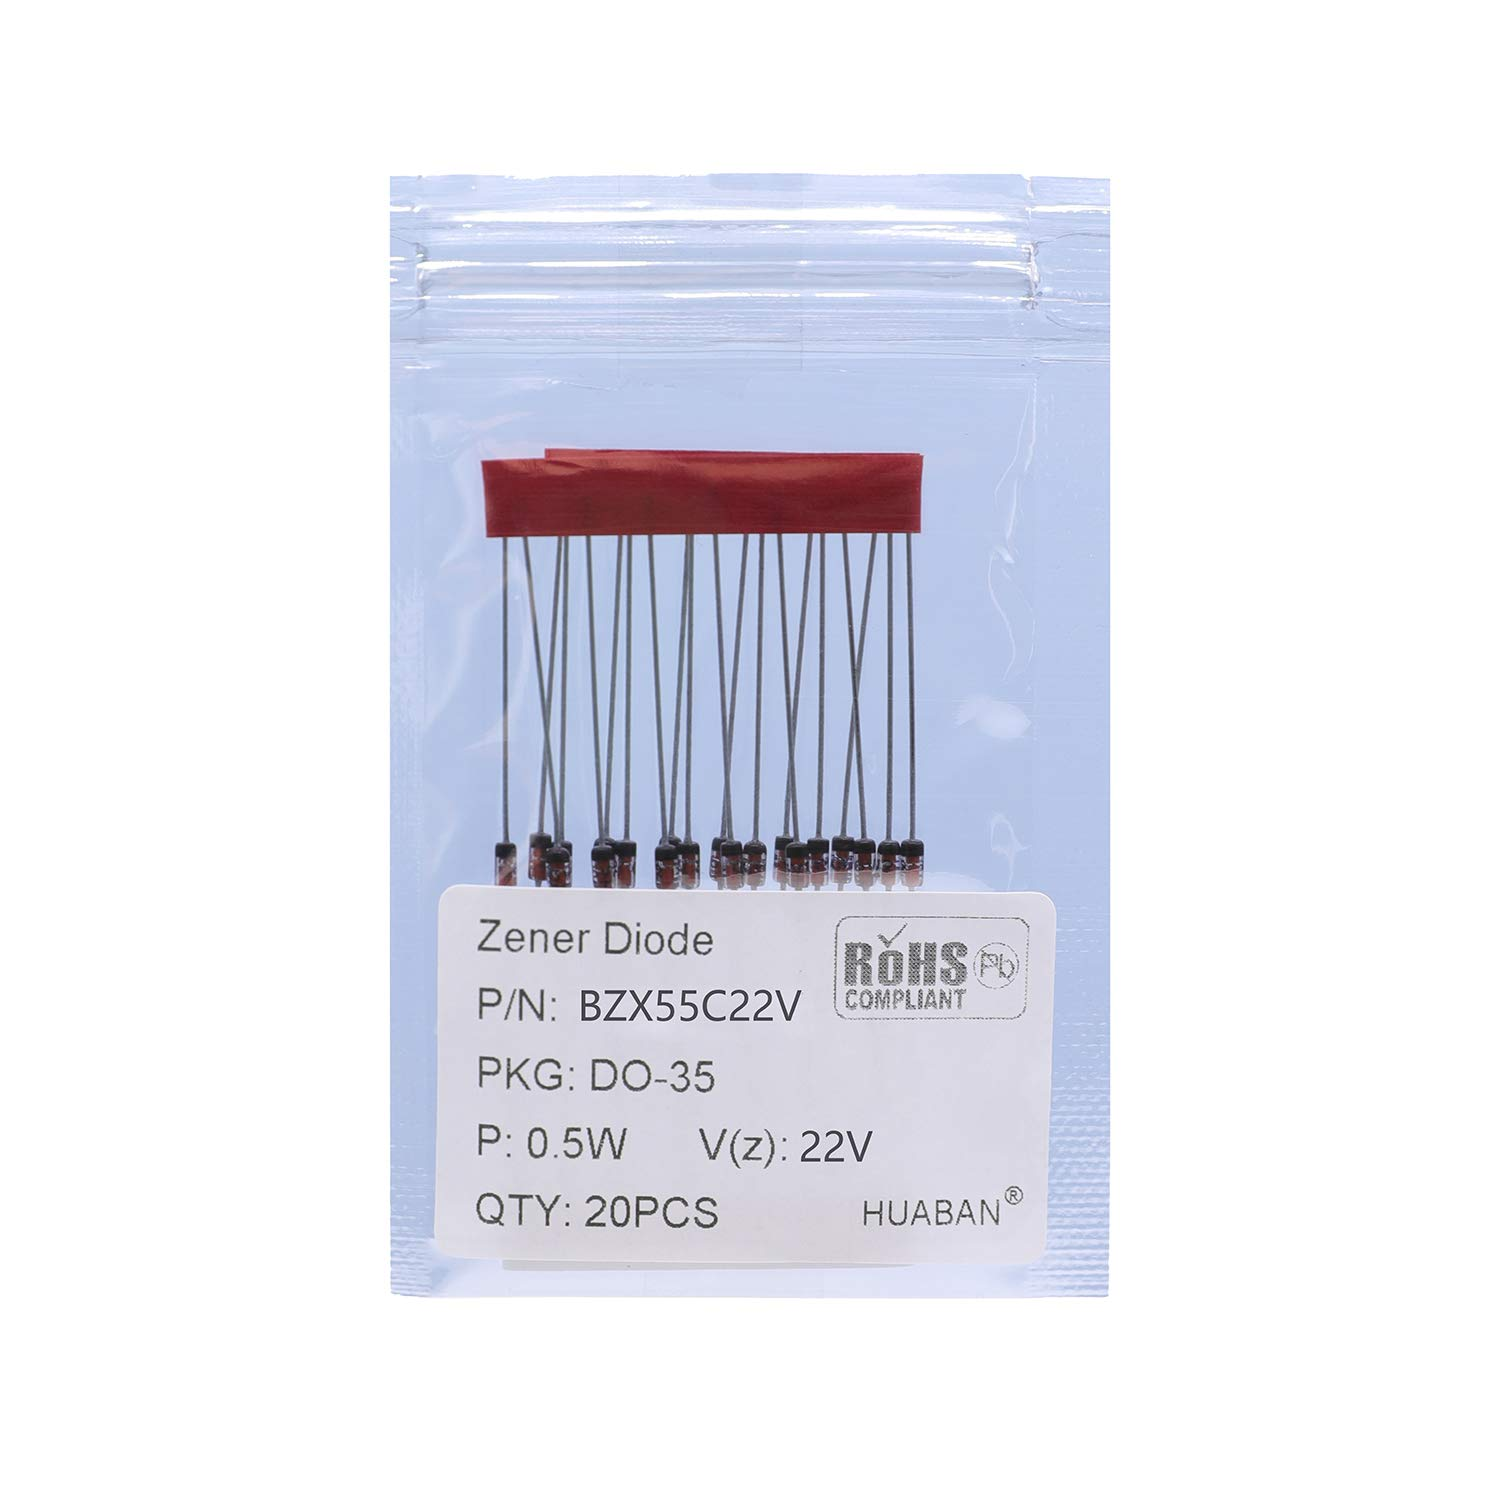 20PCS 1//2W BZX55C3V9 Silicon Planar Power Zener Diodes DO-35 Axial Diode 0.5W 3.9V